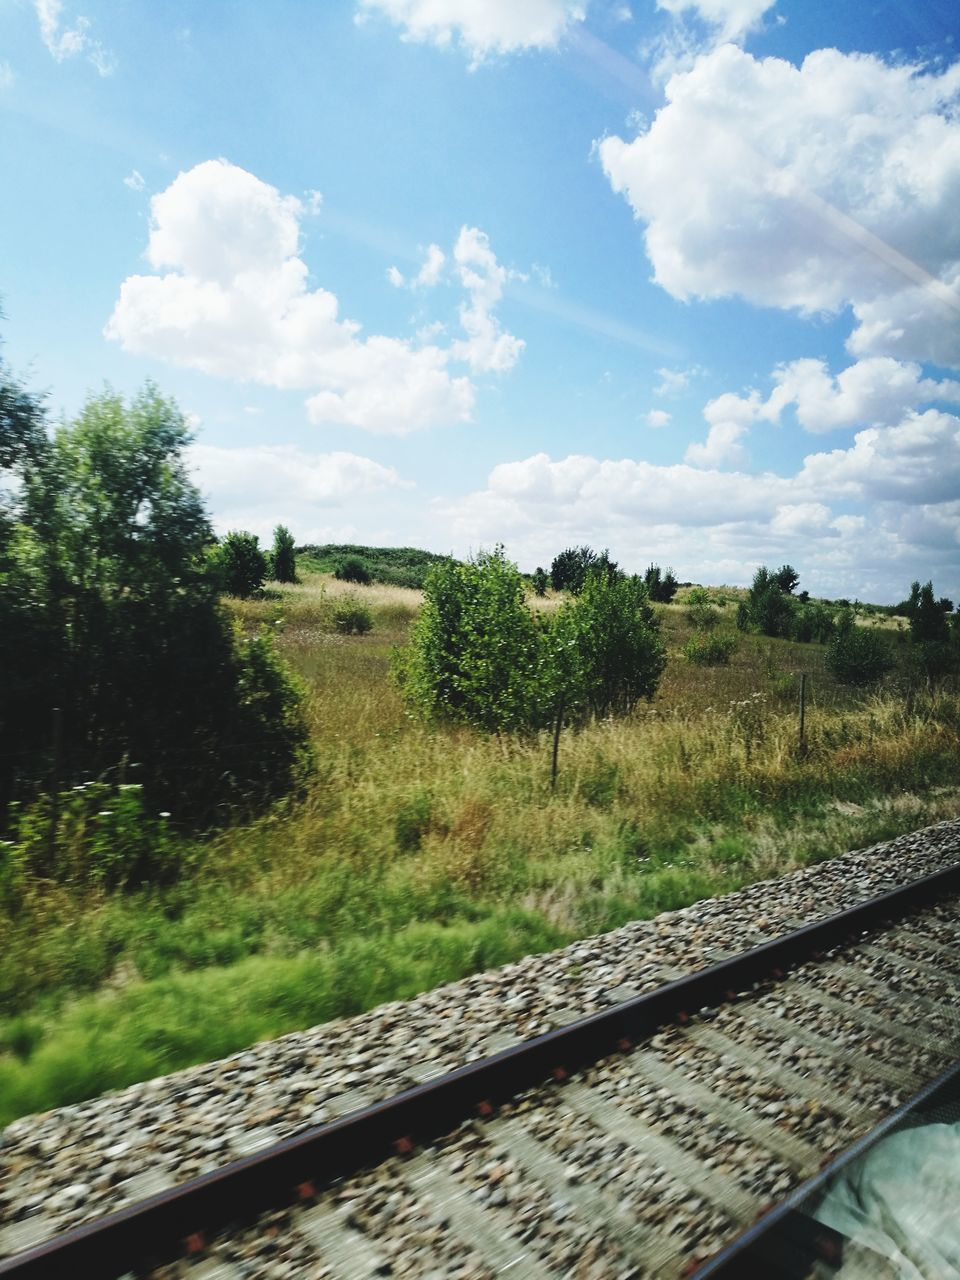 sky, track, rail transportation, railroad track, plant, tree, cloud - sky, transportation, nature, environment, day, land, landscape, grass, no people, mode of transportation, field, growth, non-urban scene, outdoors